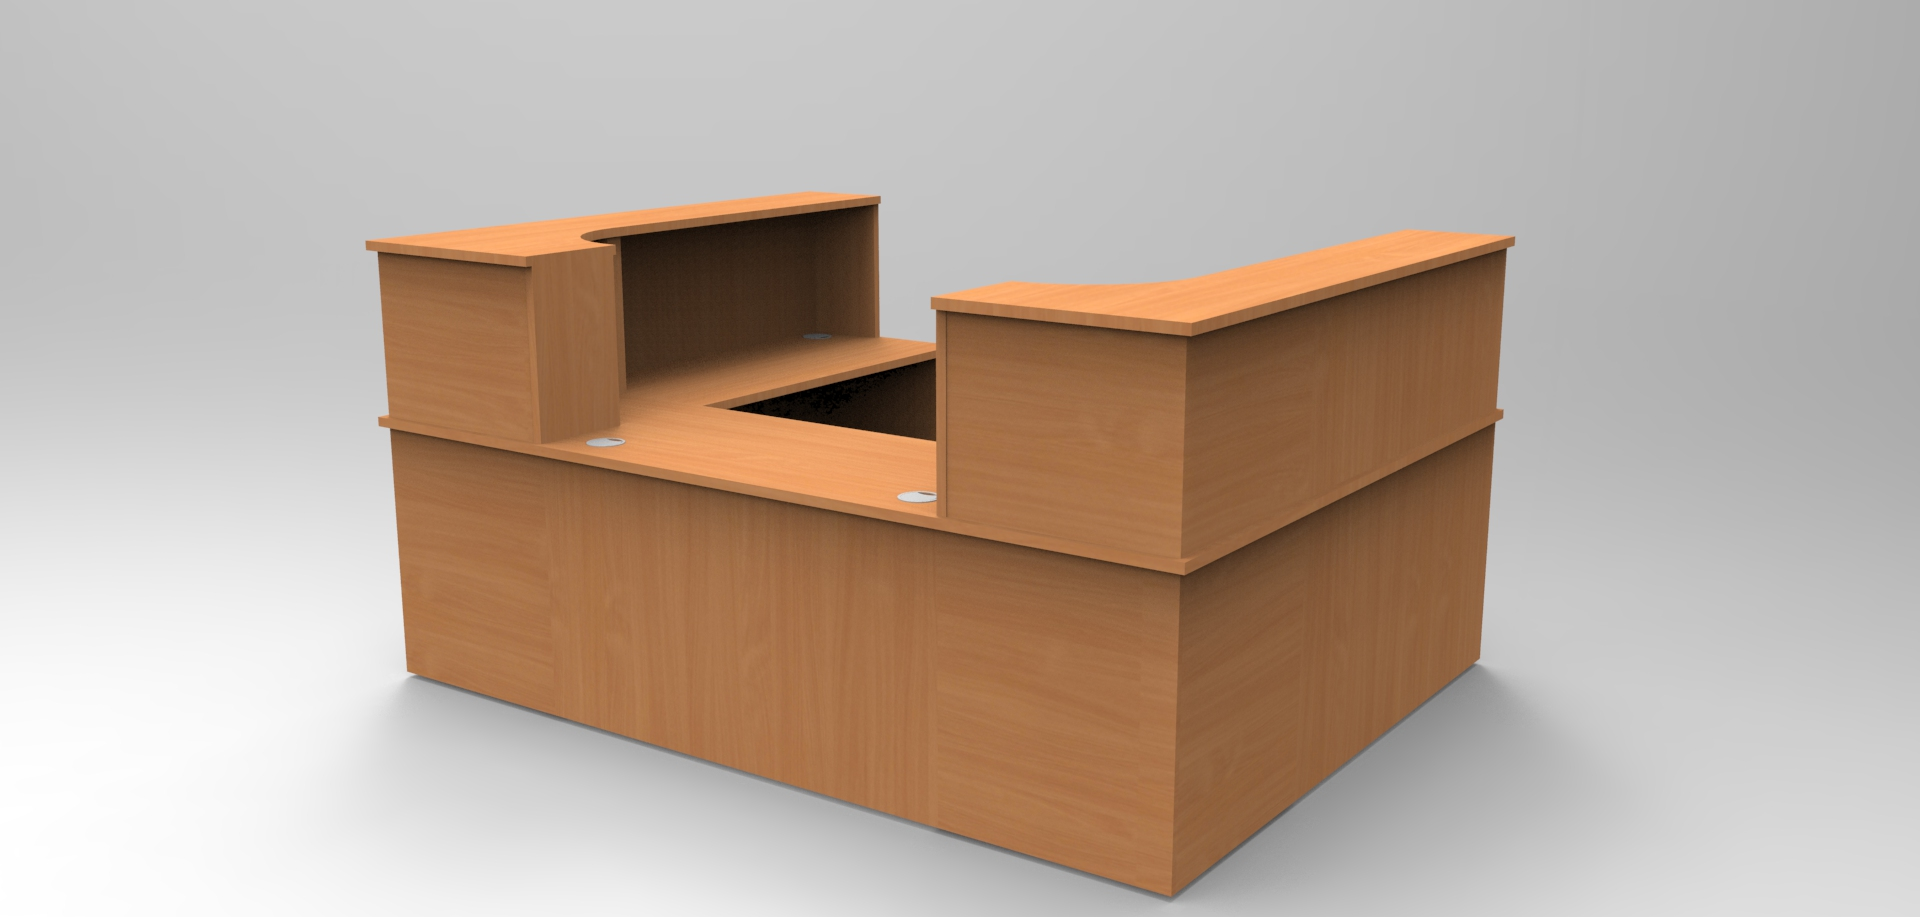 Image 24C - Single Classic reception desk finished in Beech